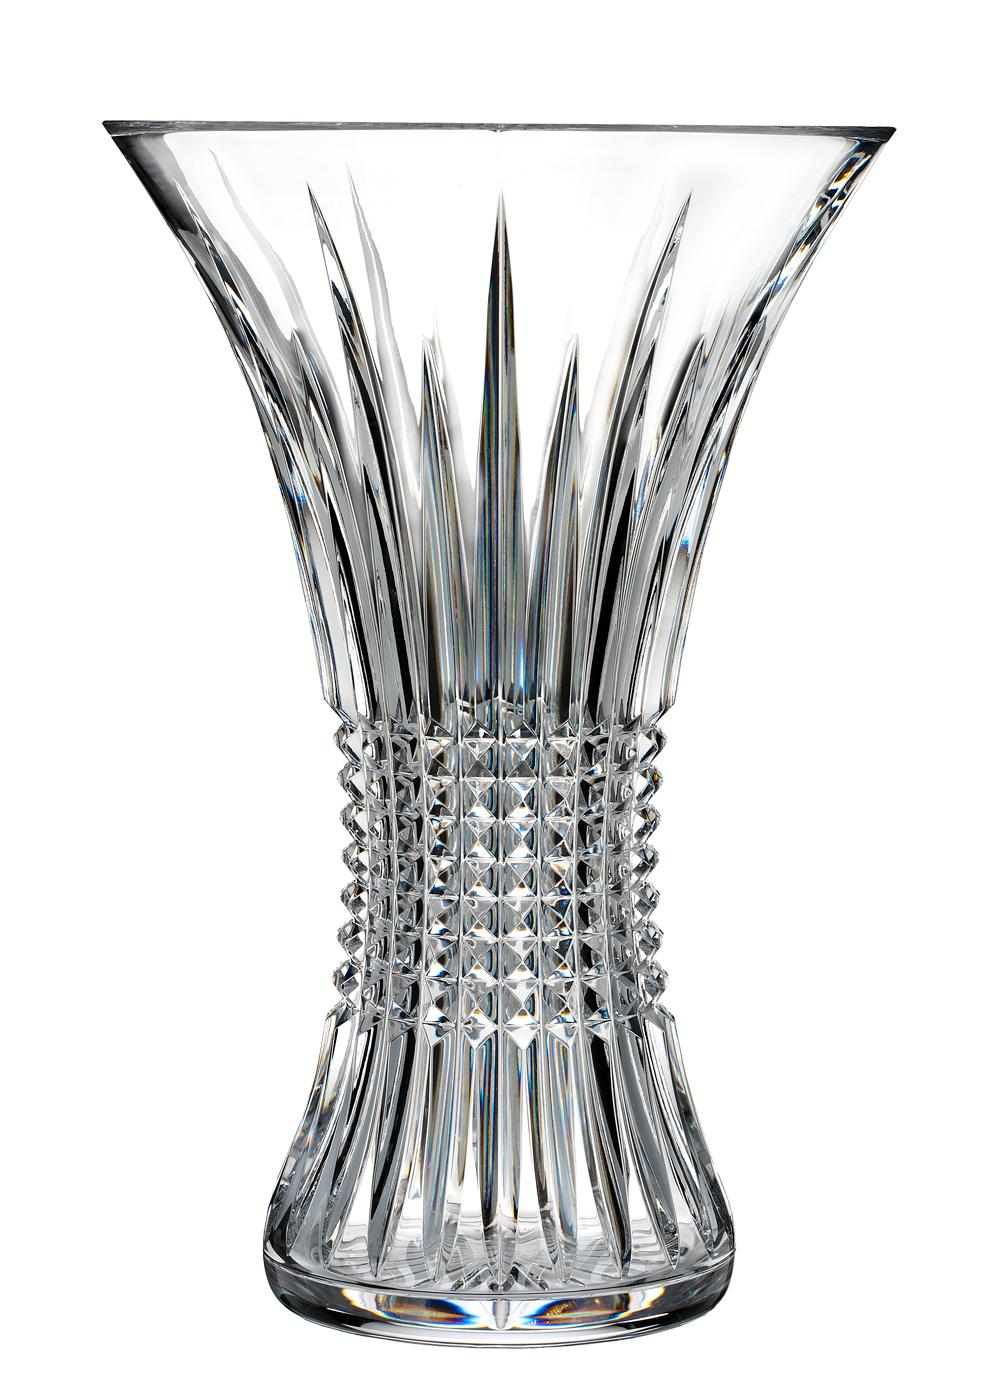 Waterford crystal lismore diamond 12 inch vase blarney waterford crystal lismore diamond 12 vase reviewsmspy